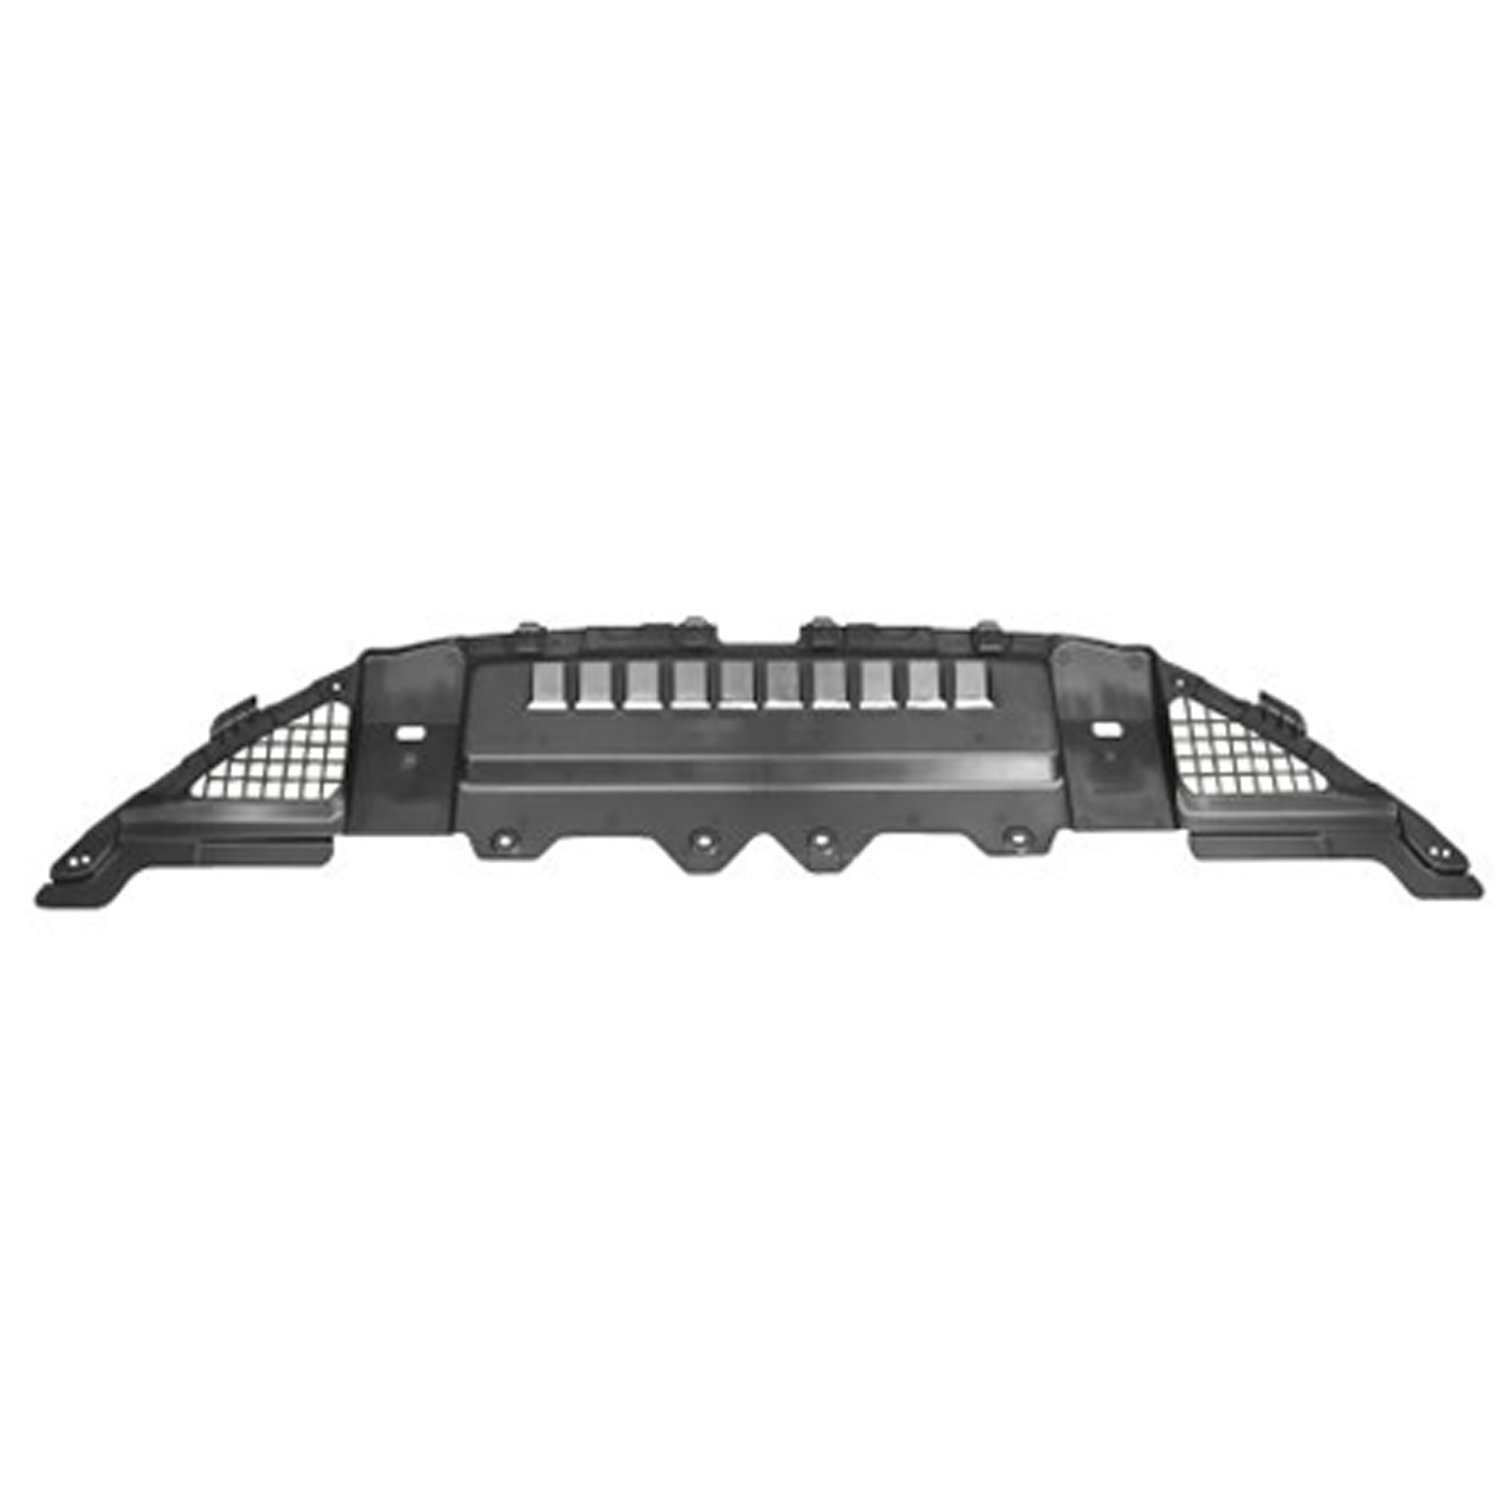 OE Replacement 2007-2010 CHEVROLET PICKUP/_CHEVY/_SILVERADO Radiator Support Cover Partslink Number GM1224112